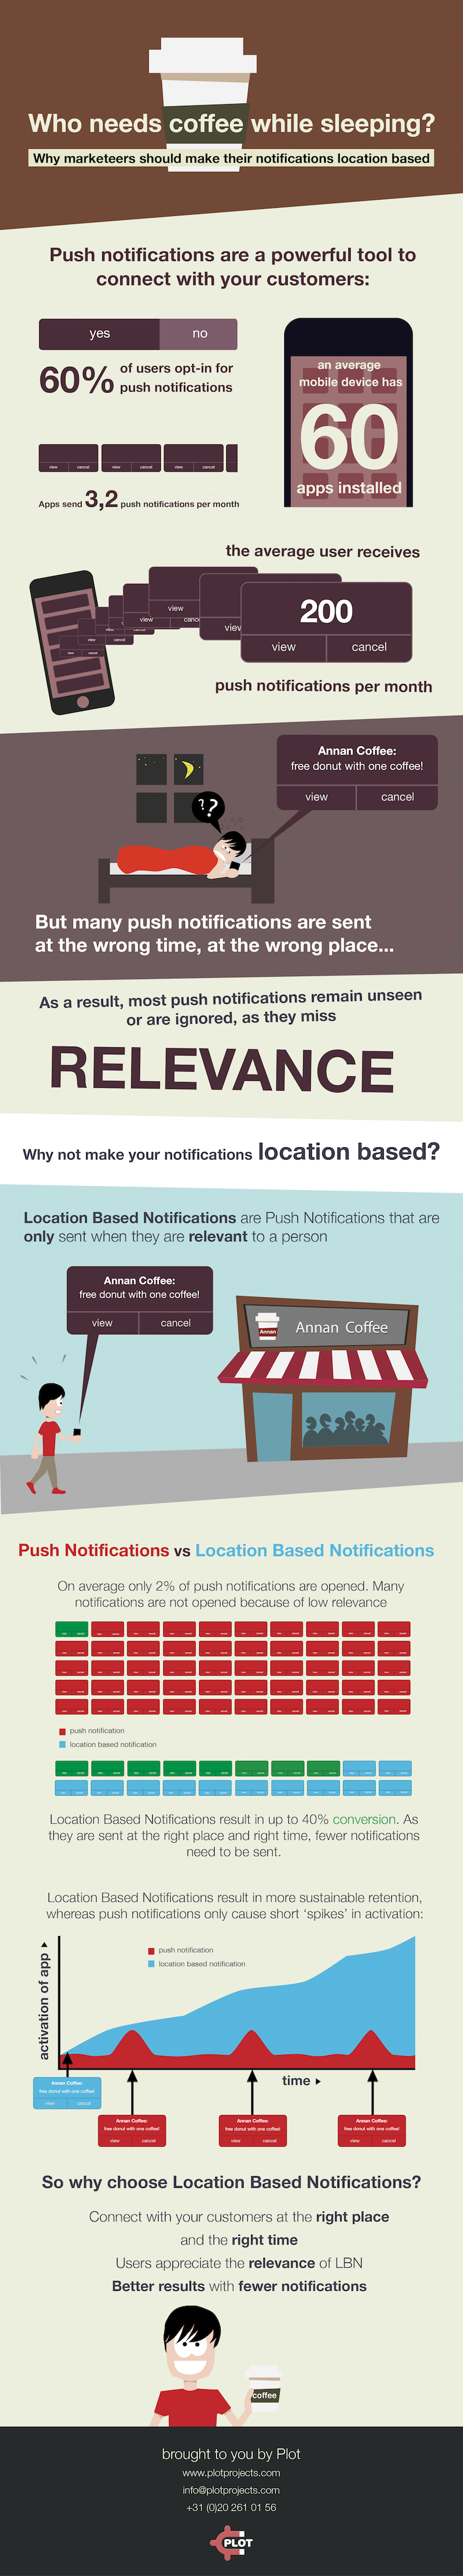 Mobile marketing infographic about the power of location based notifications